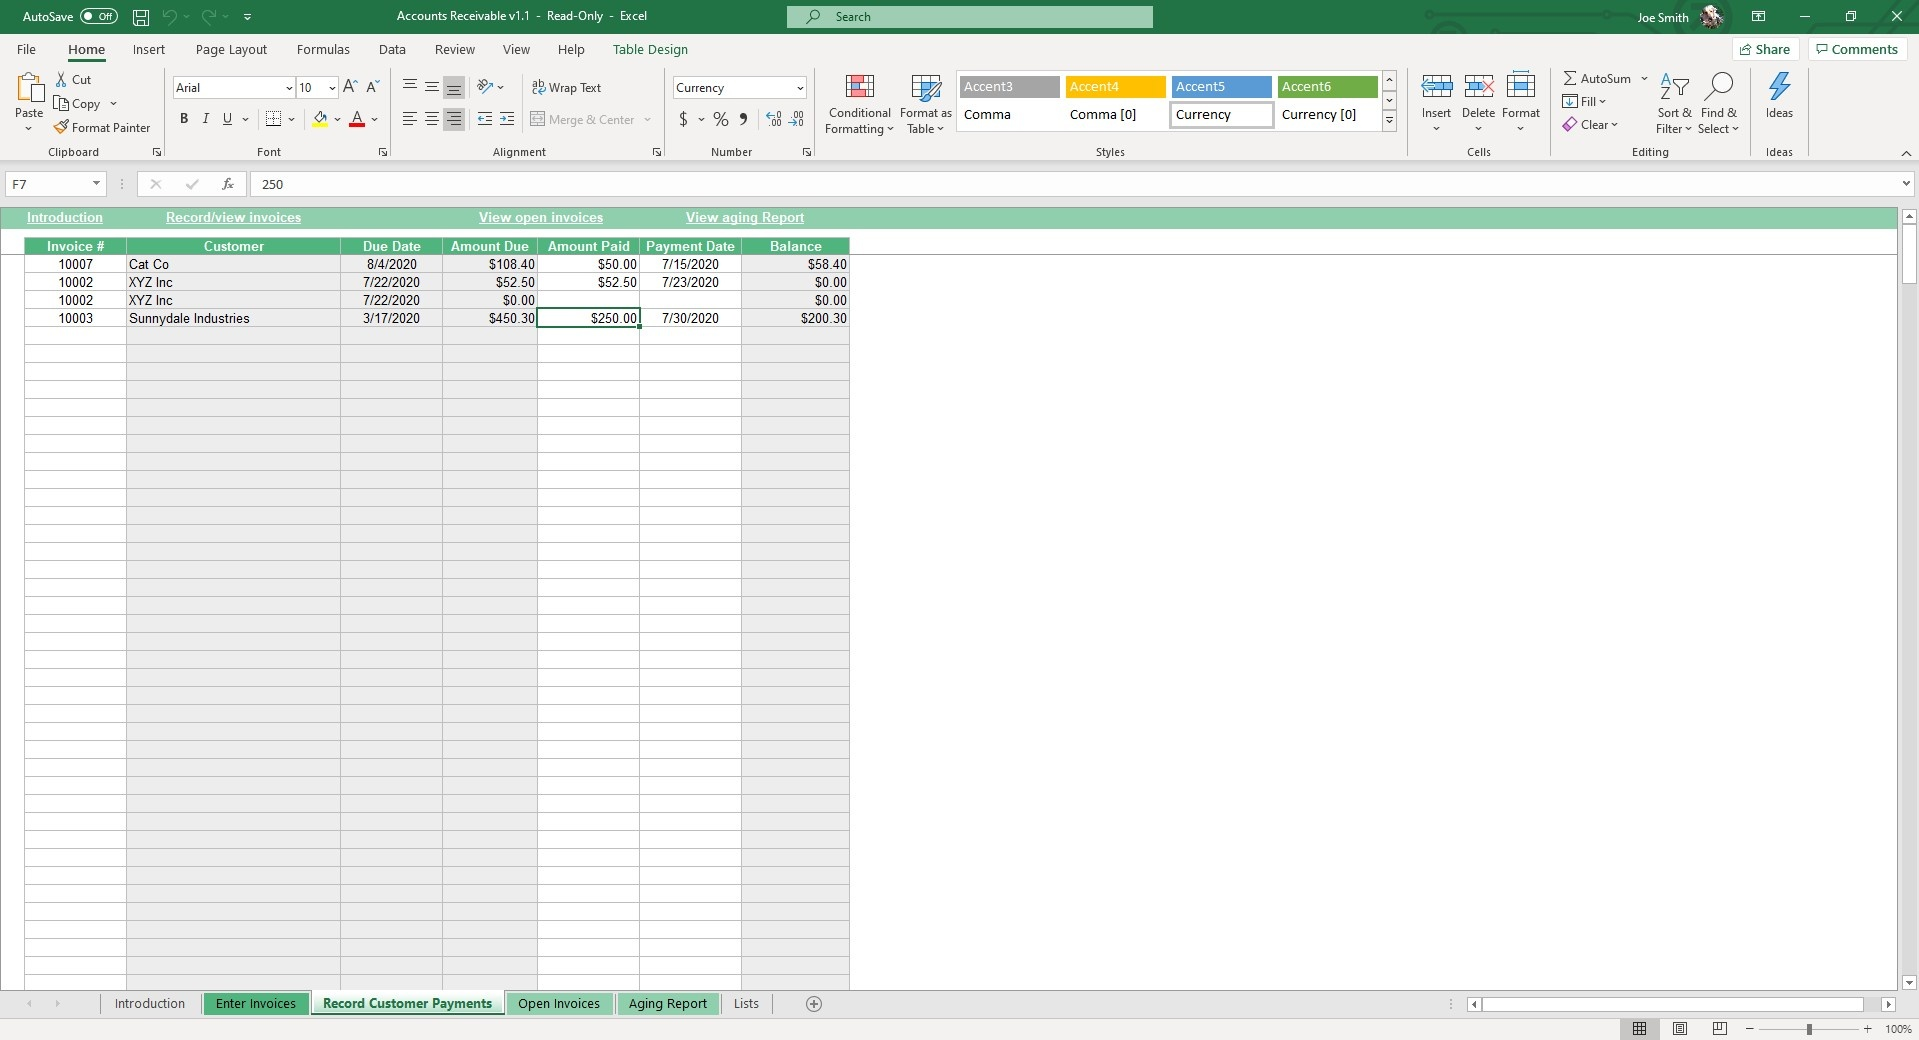 Record customer payments made in this sheet